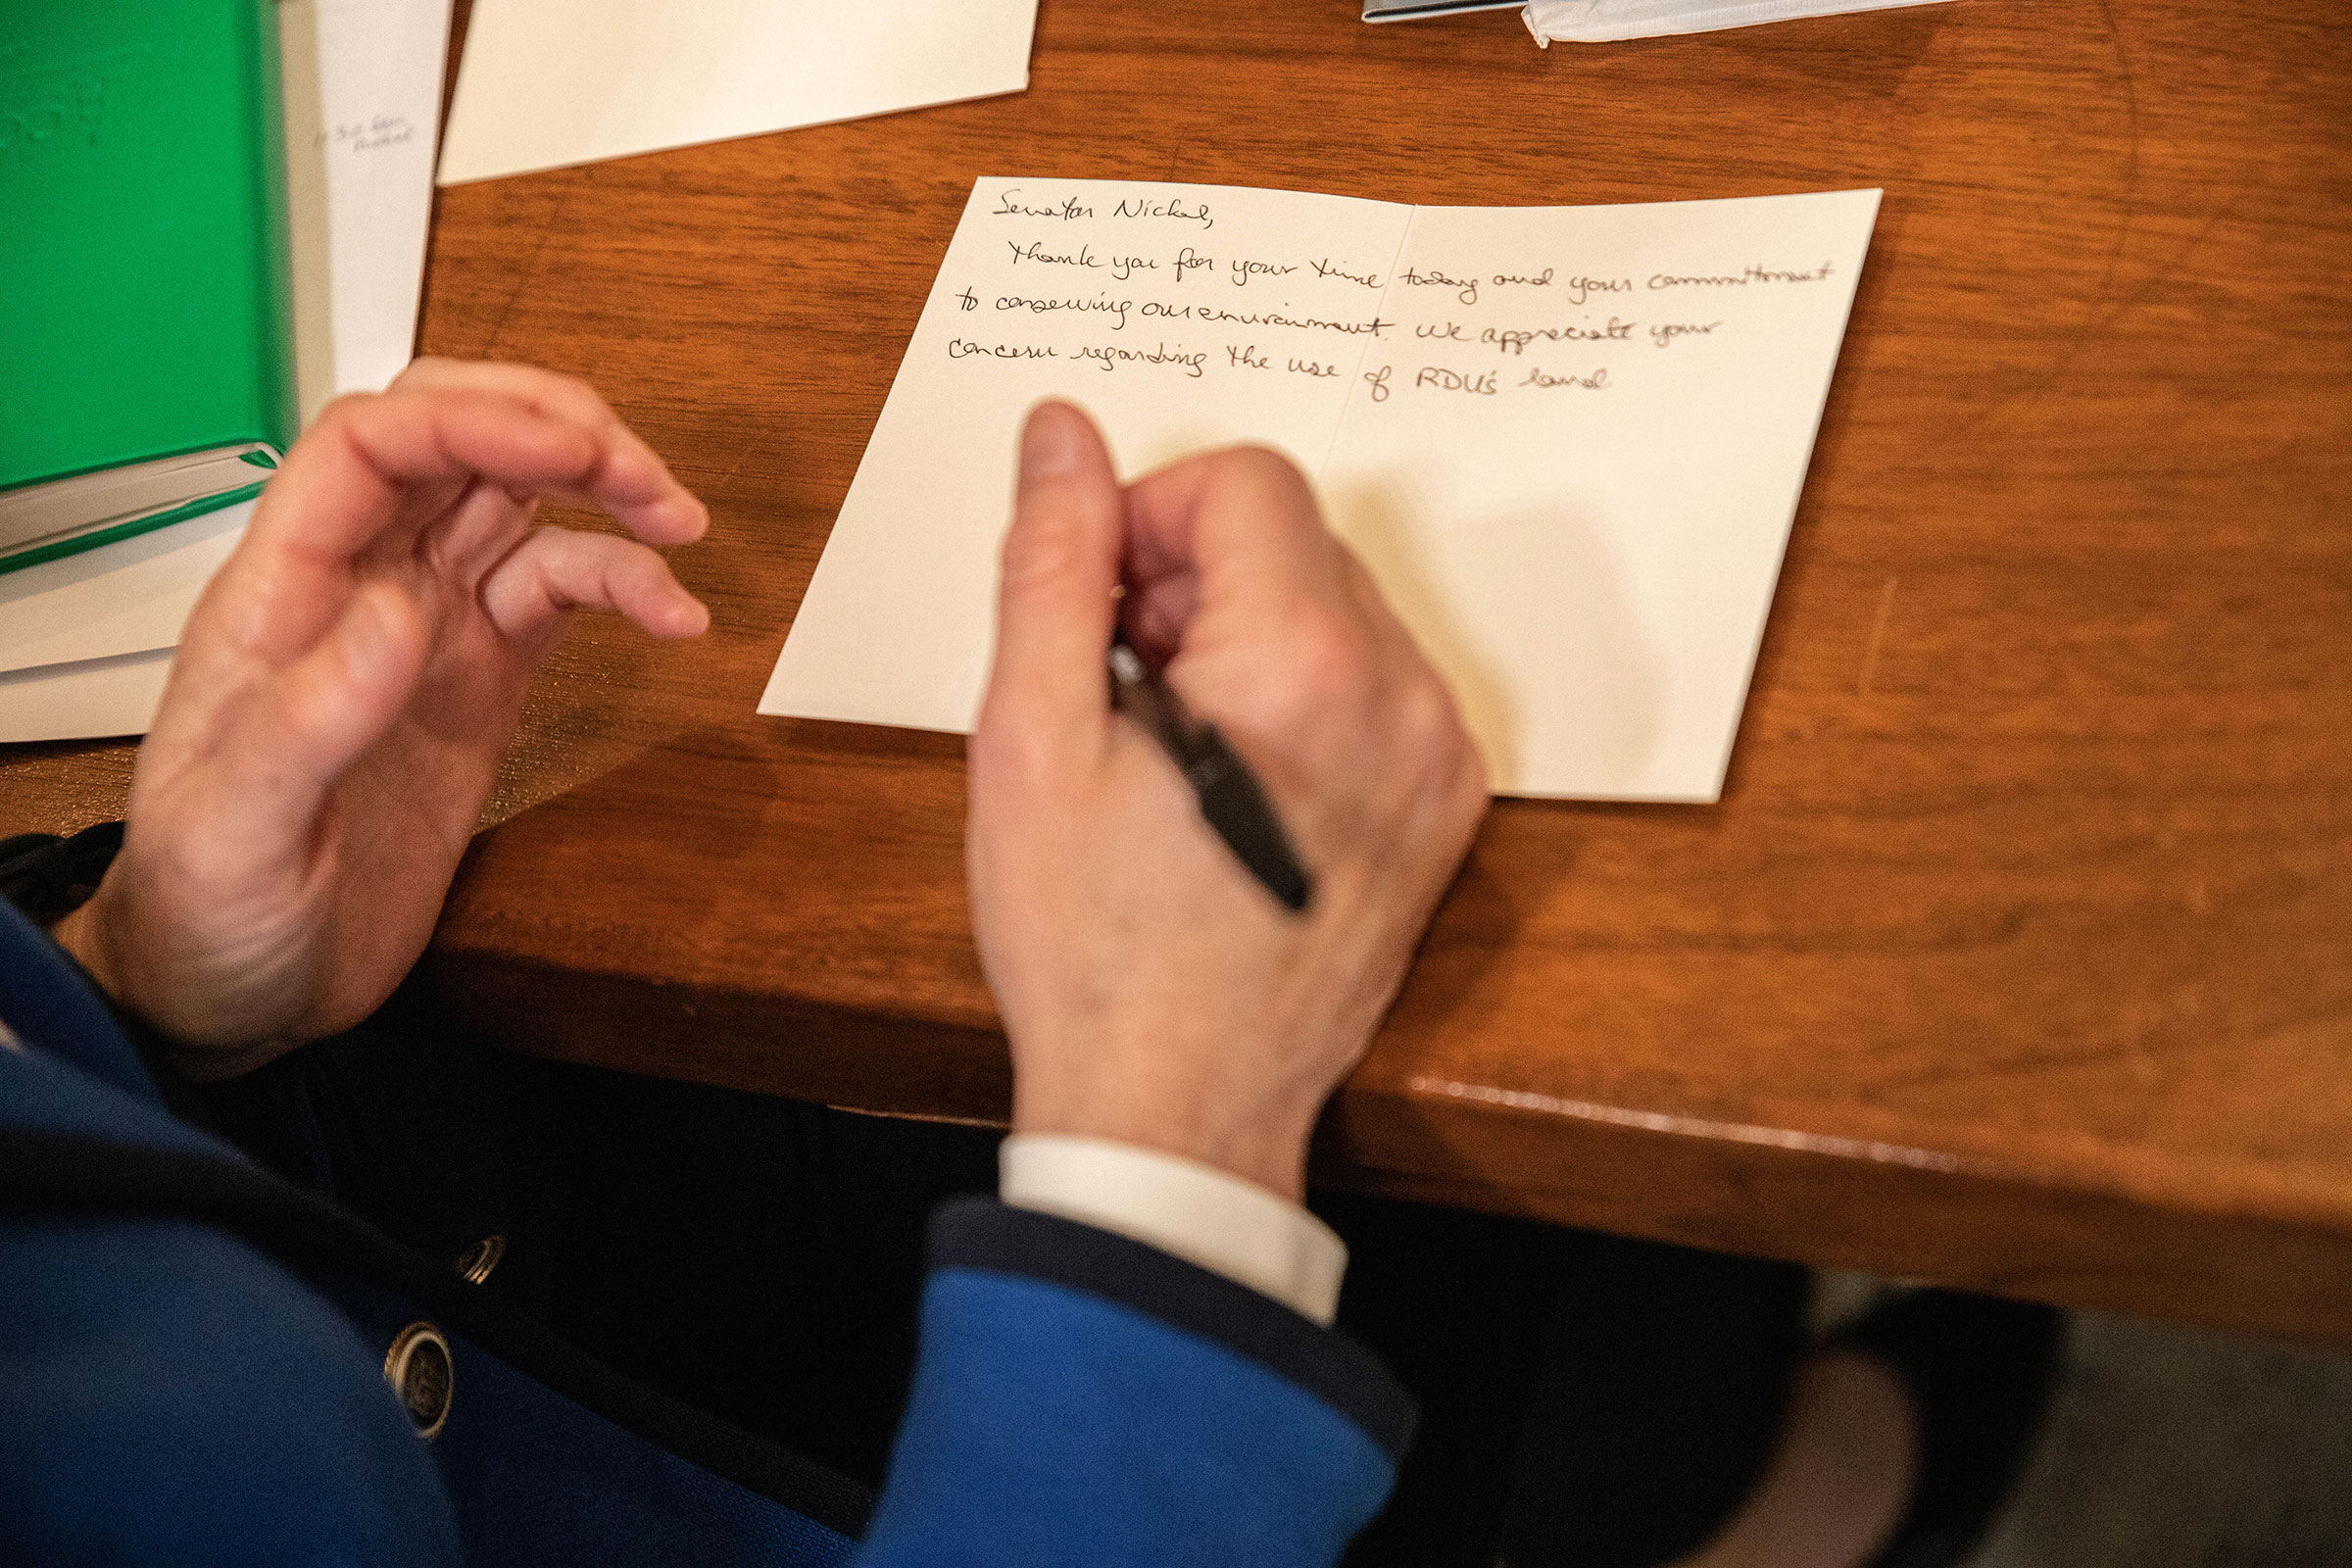 Mary Abrams, Audubon ambassador and chair of Wake Audubon's advocacy committee, pens a thank you card to her local senator after their meeting and tour of the North Carolina capitol building. Dominic Arenas/Audubon